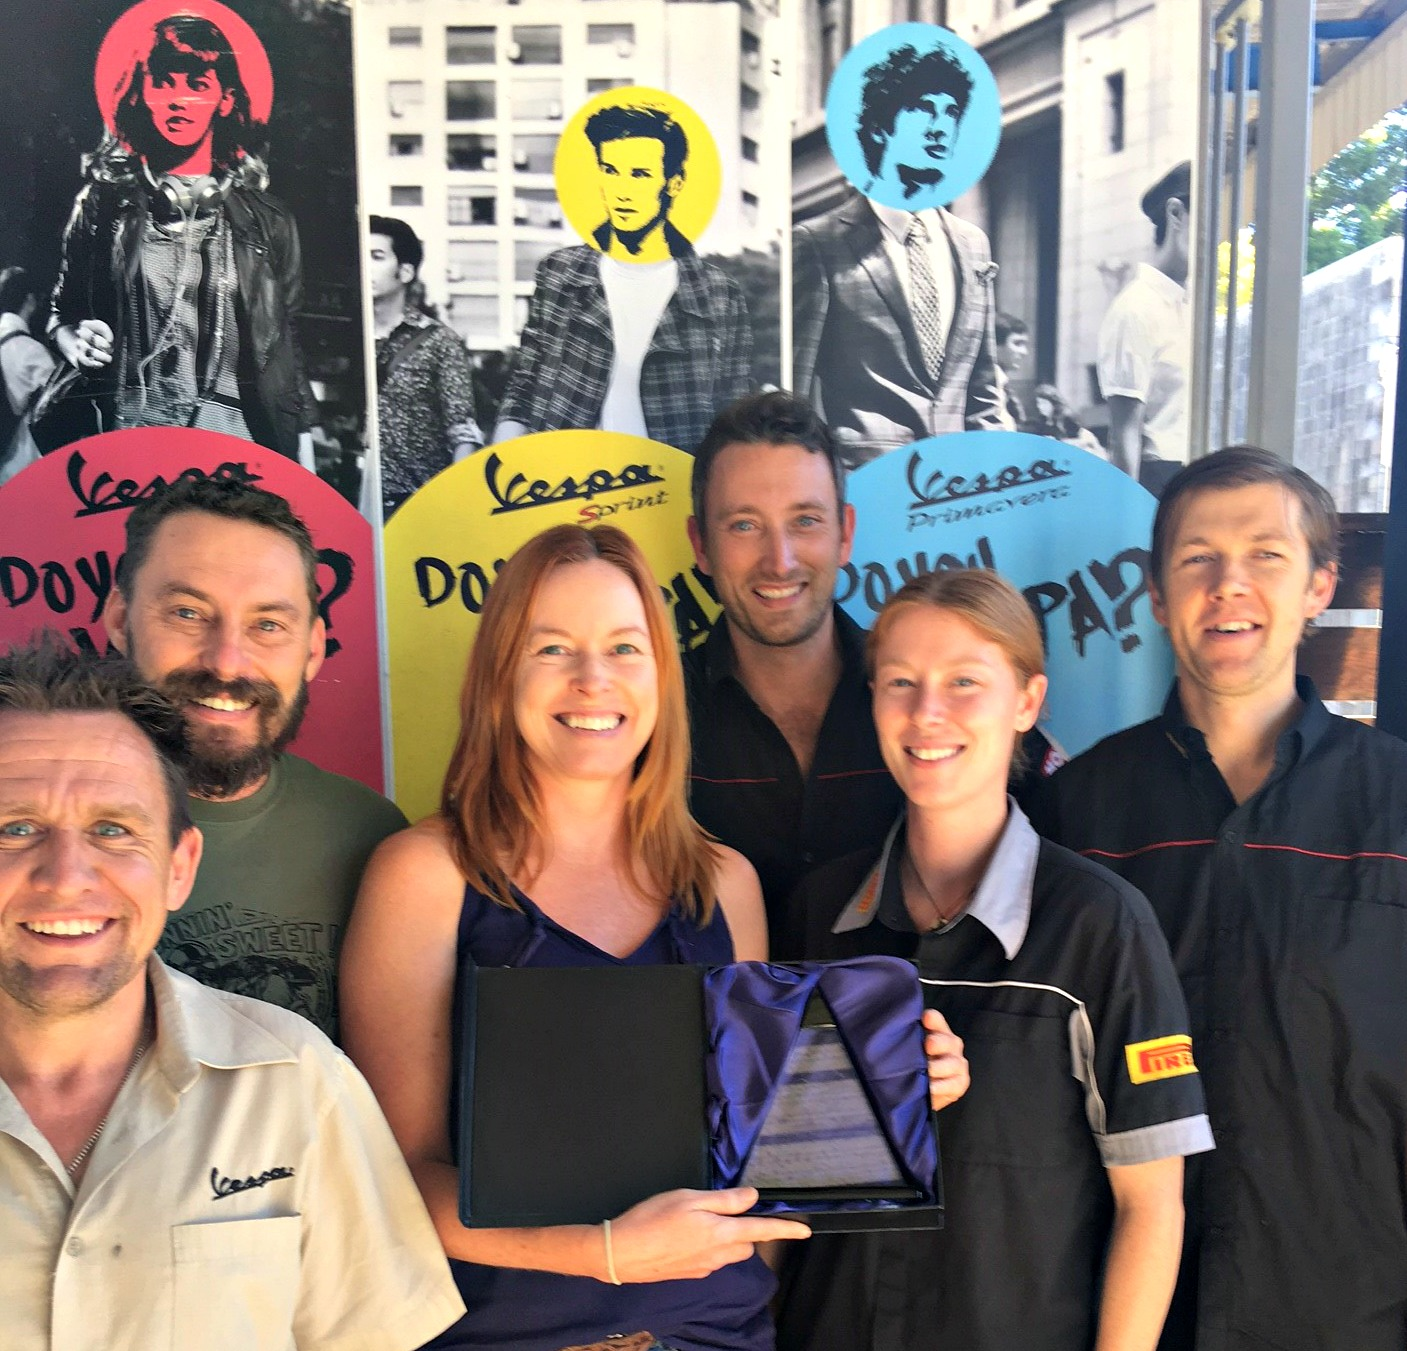 2015 Combined Piaggio & Vespa Best Performing Dealer in the Qld Region